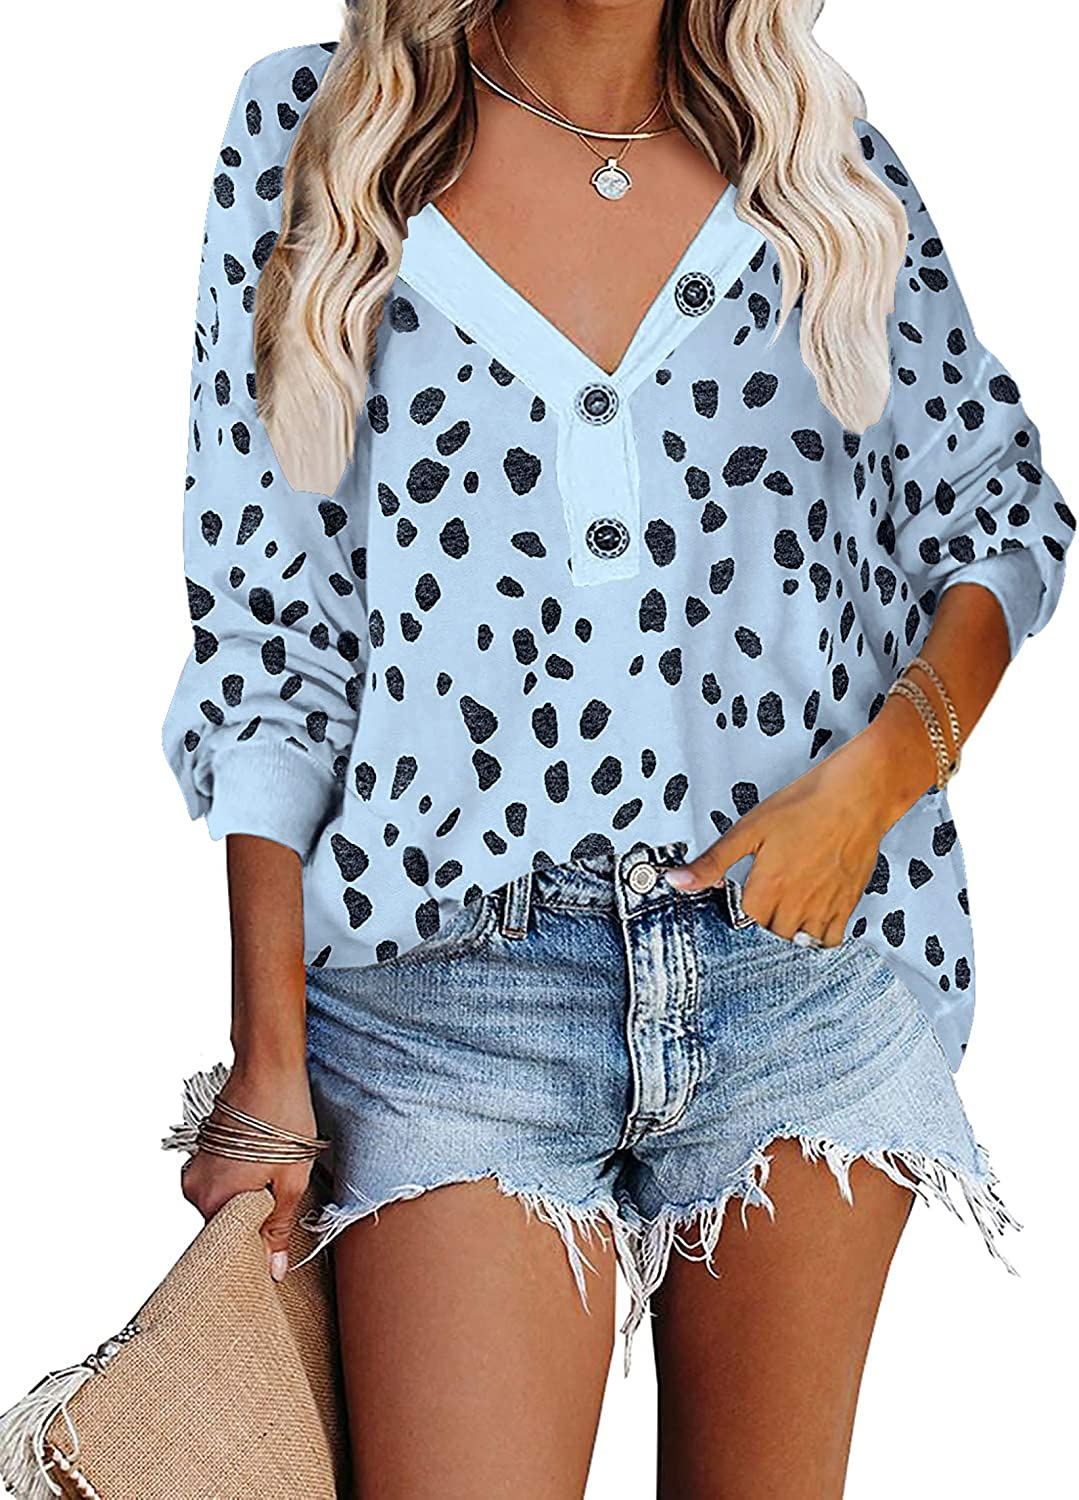 BTFBM Women Long Sleeve V-Neck Buttons Loose Shirts Blouses Casual Cozy Soft Sweatshirts Tops Leopard Print Solid Color